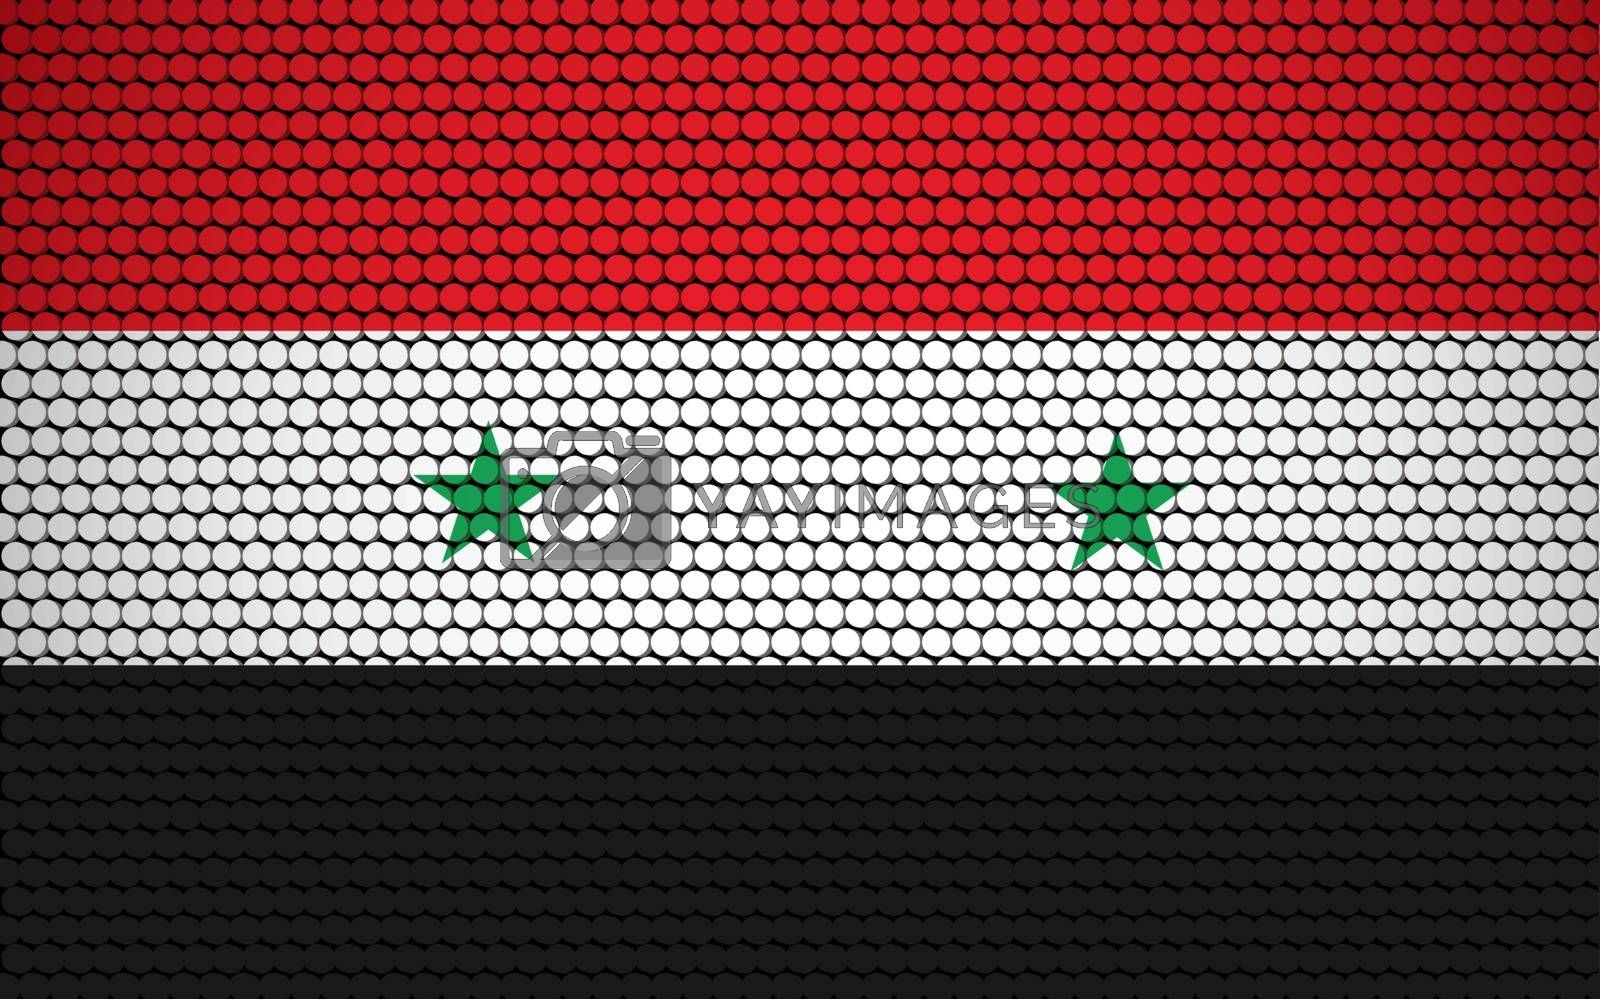 Abstract flag of Syria made of circles. Syrian flag designed with colored dots giving it a modern and futuristic abstract look.